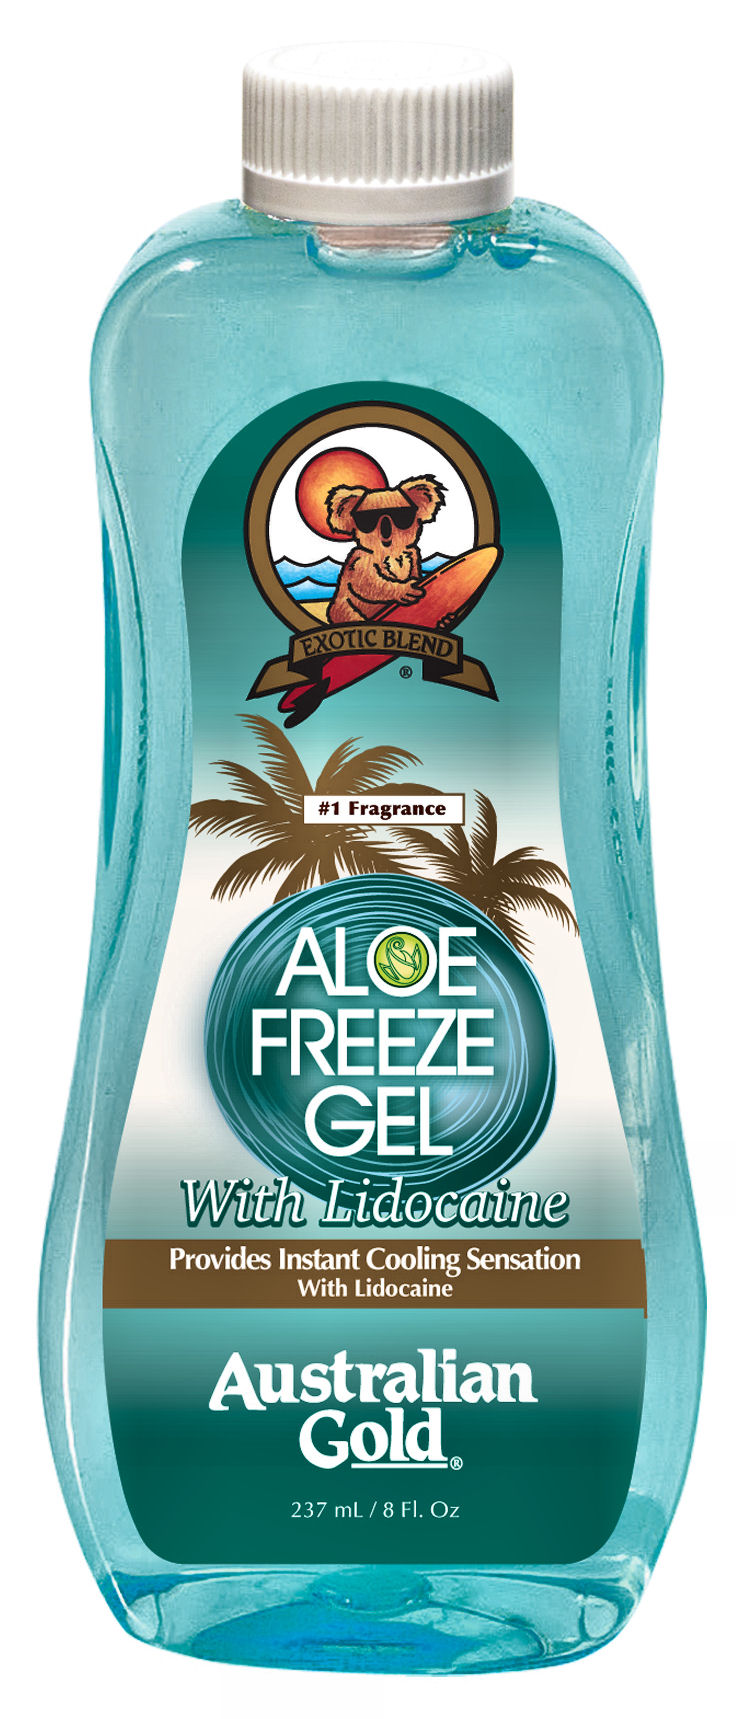 Aloe Freeze Gel Lidocaine